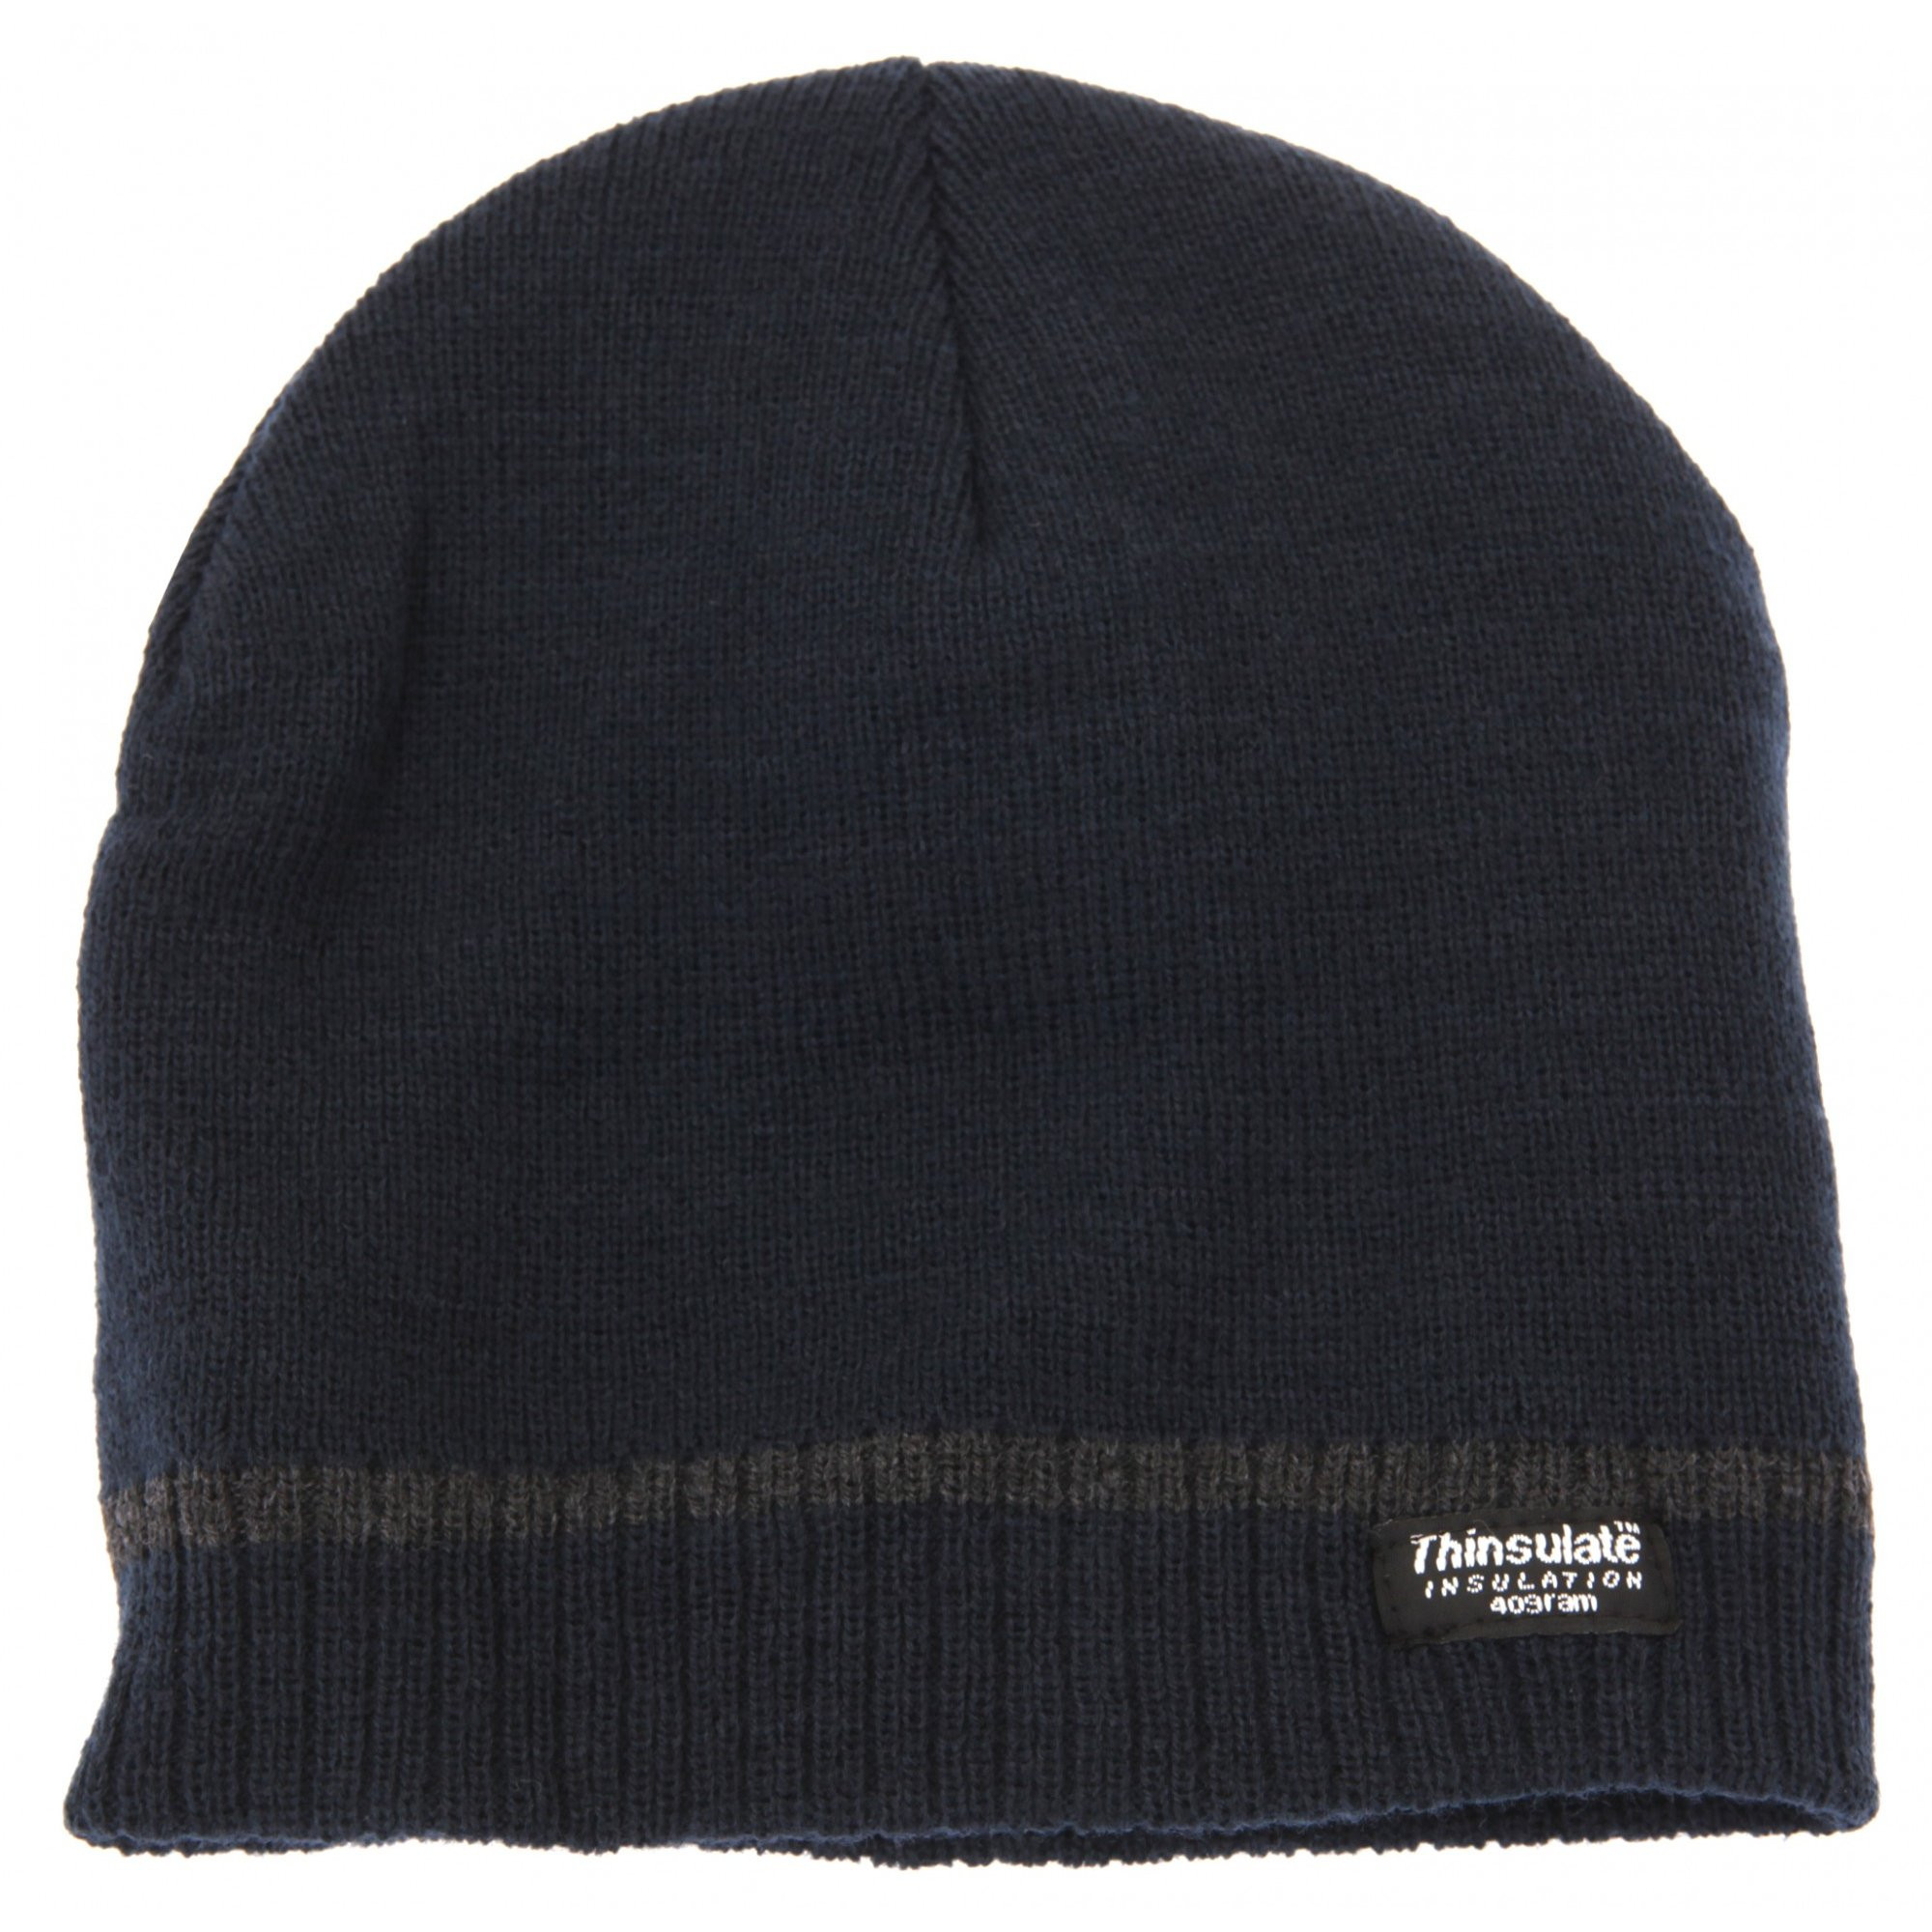 Mens Winter Hats New Mens thermal Thinsulate Winter Beanie Hat 3m 40g Of Great 48 Images Mens Winter Hats